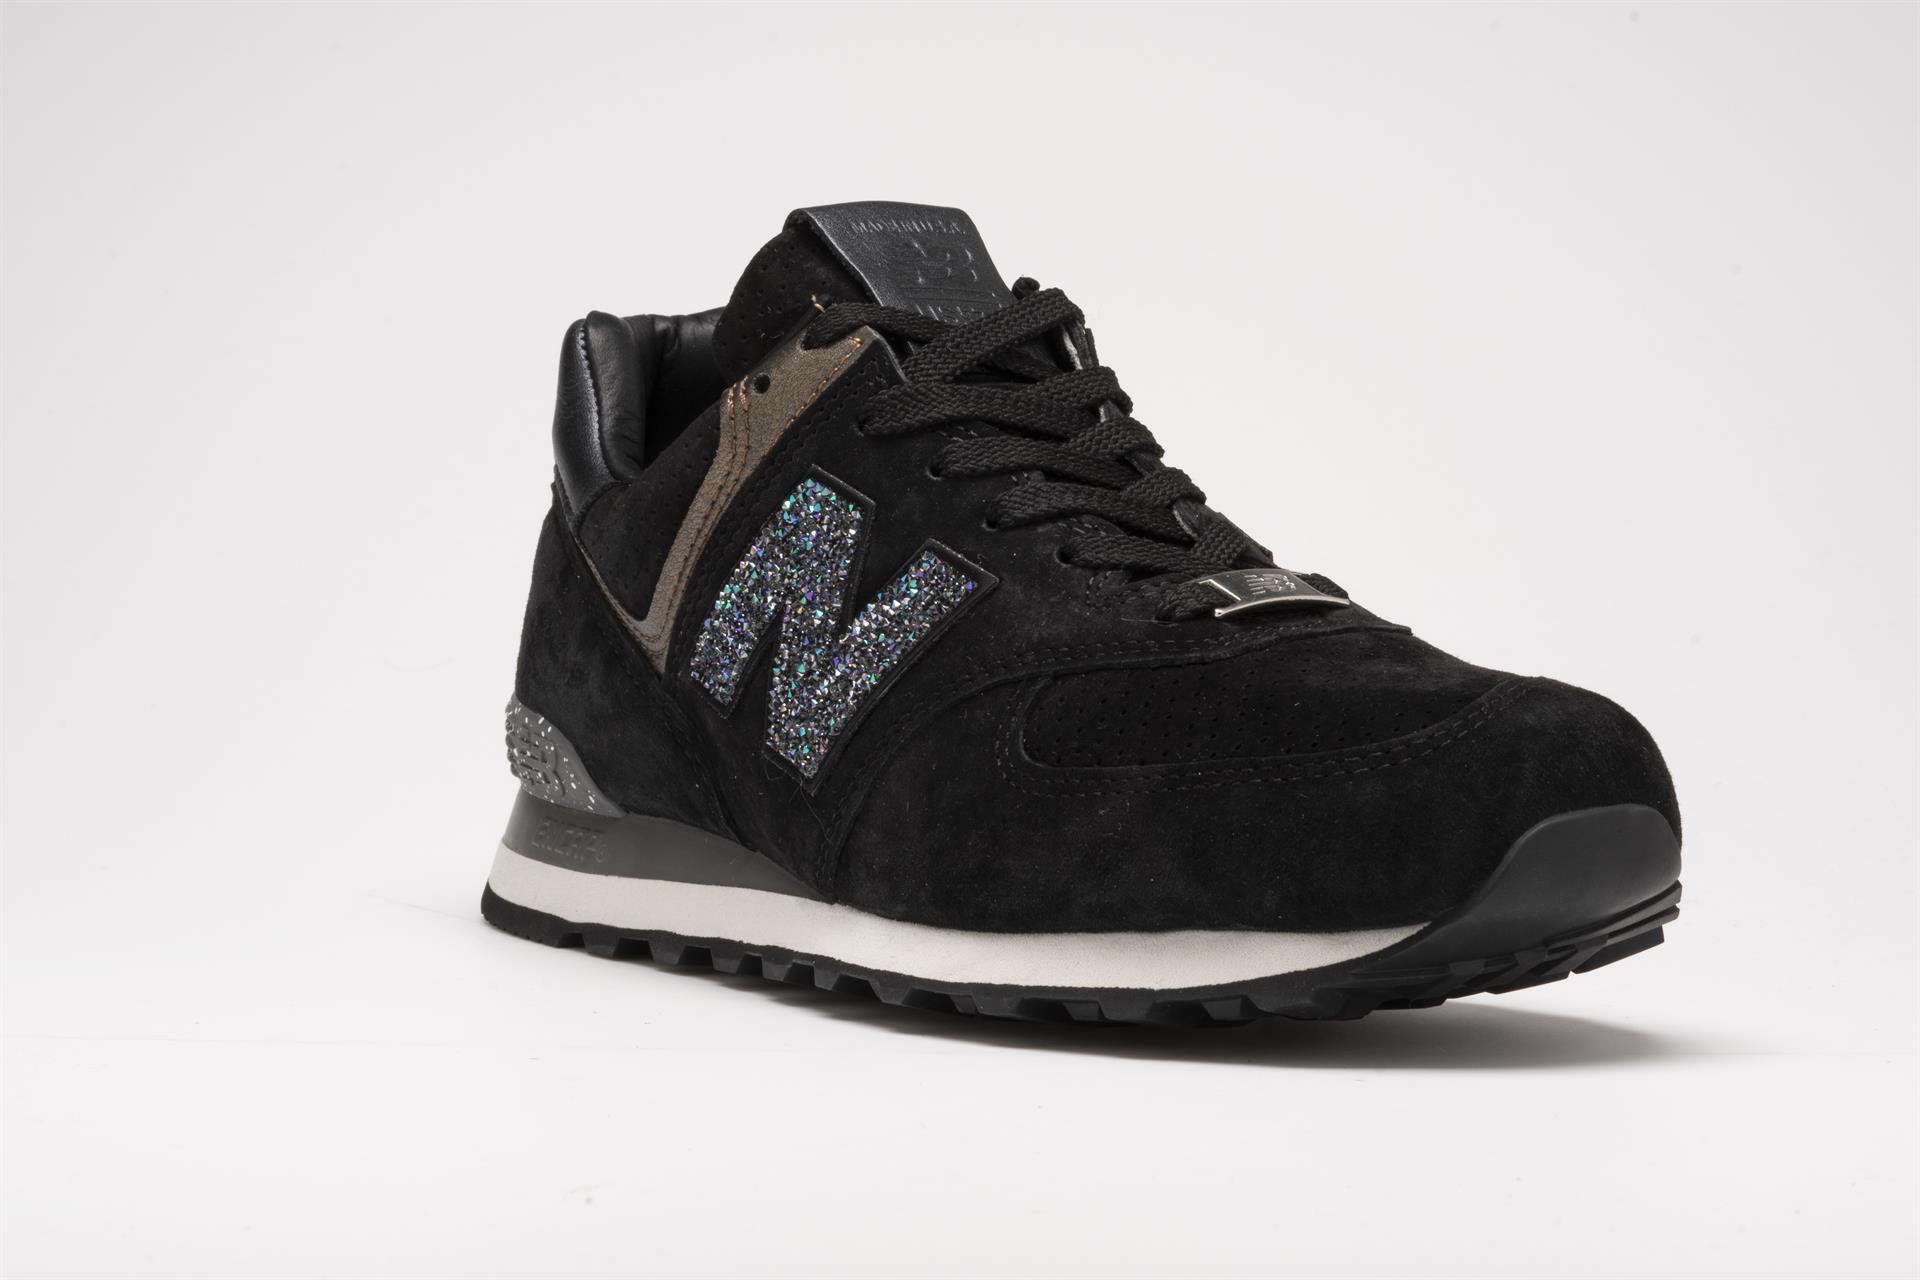 quality design 3a41e d6777 New Balance Releases Limited NB1 574 with Crystals from ...